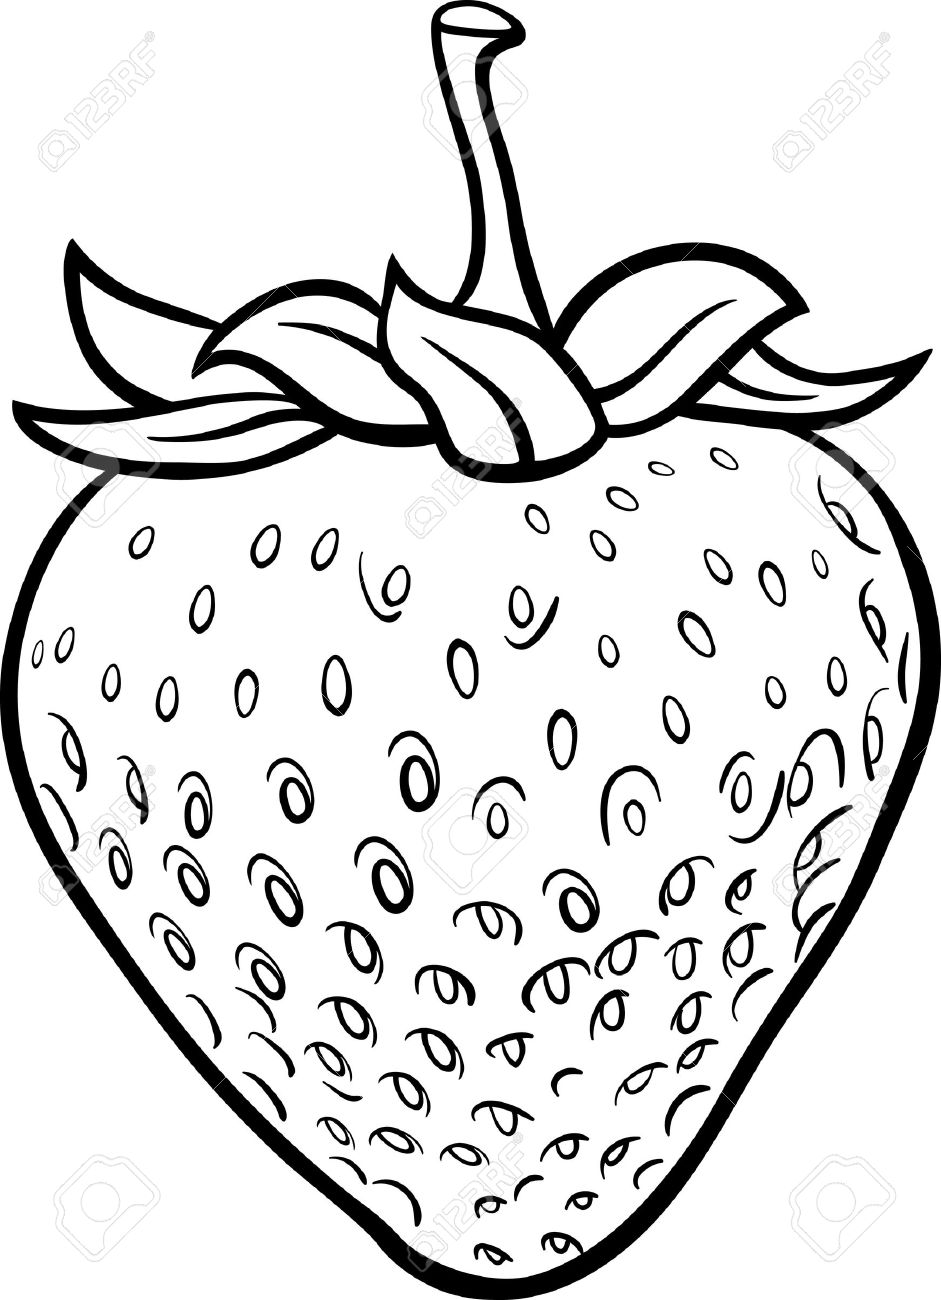 Strawberry black and white clipart 4 » Clipart Station.